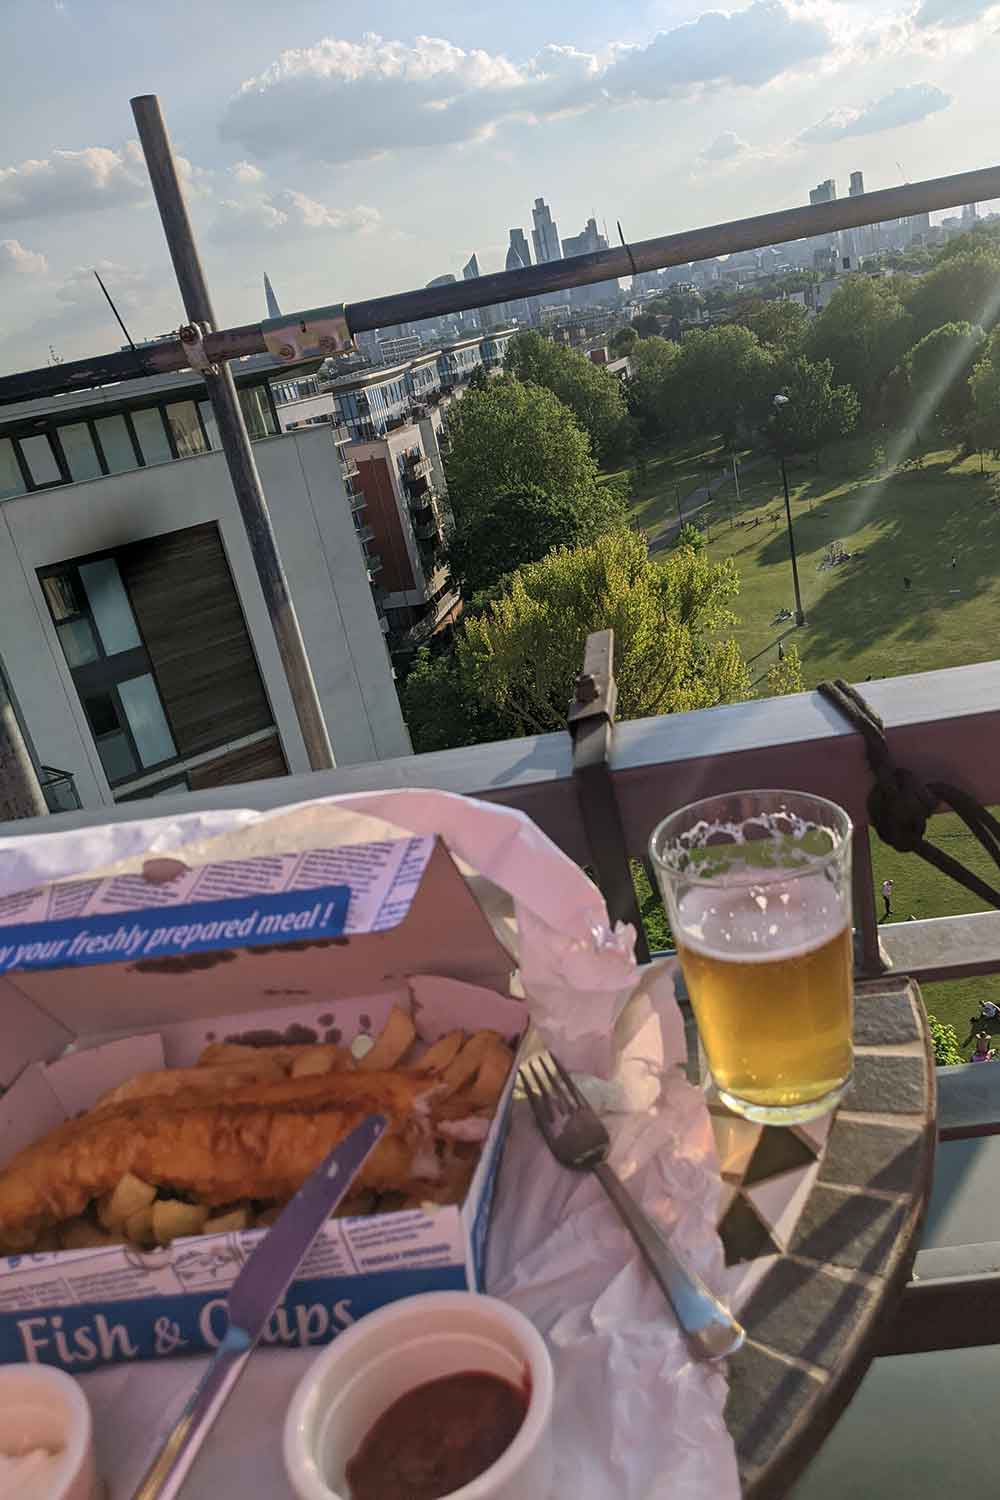 Enjoying takeway fish and chips and a pint during lockdown, 2020.